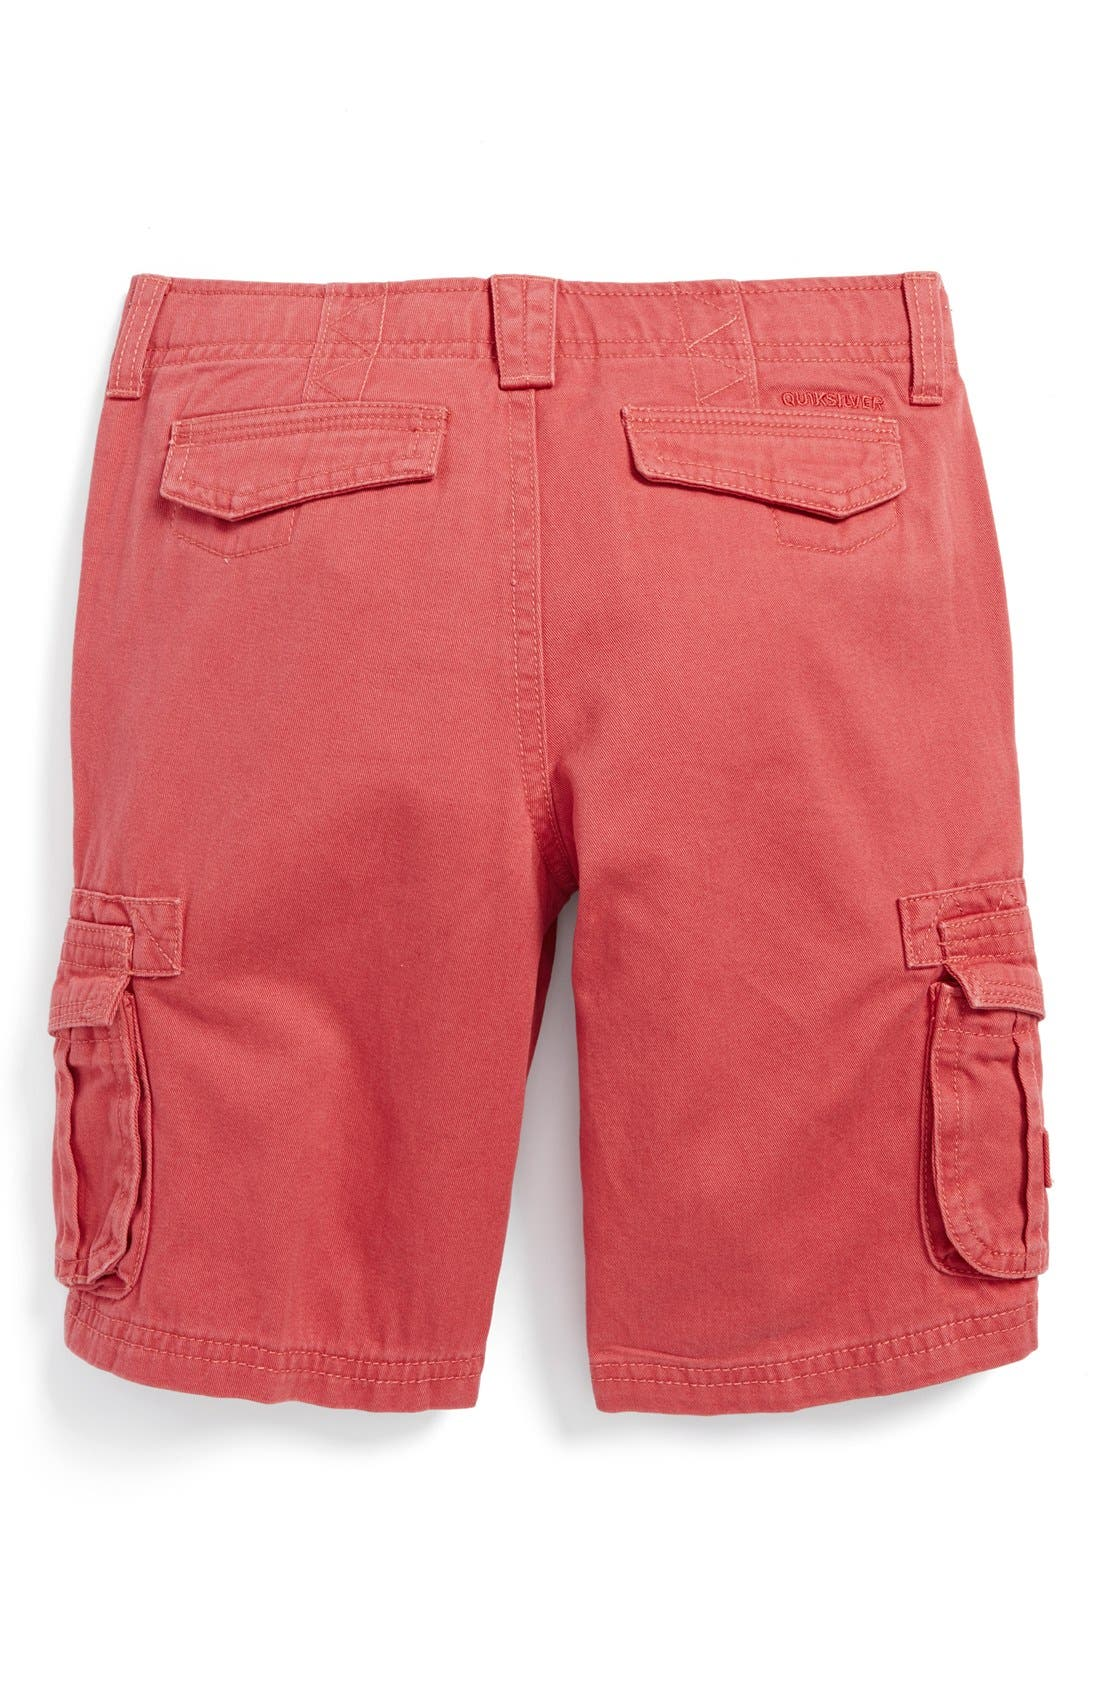 Alternate Image 2  - Quiksilver 'Deluxe' Cotton Twill Cargo Shorts (Little Boys)